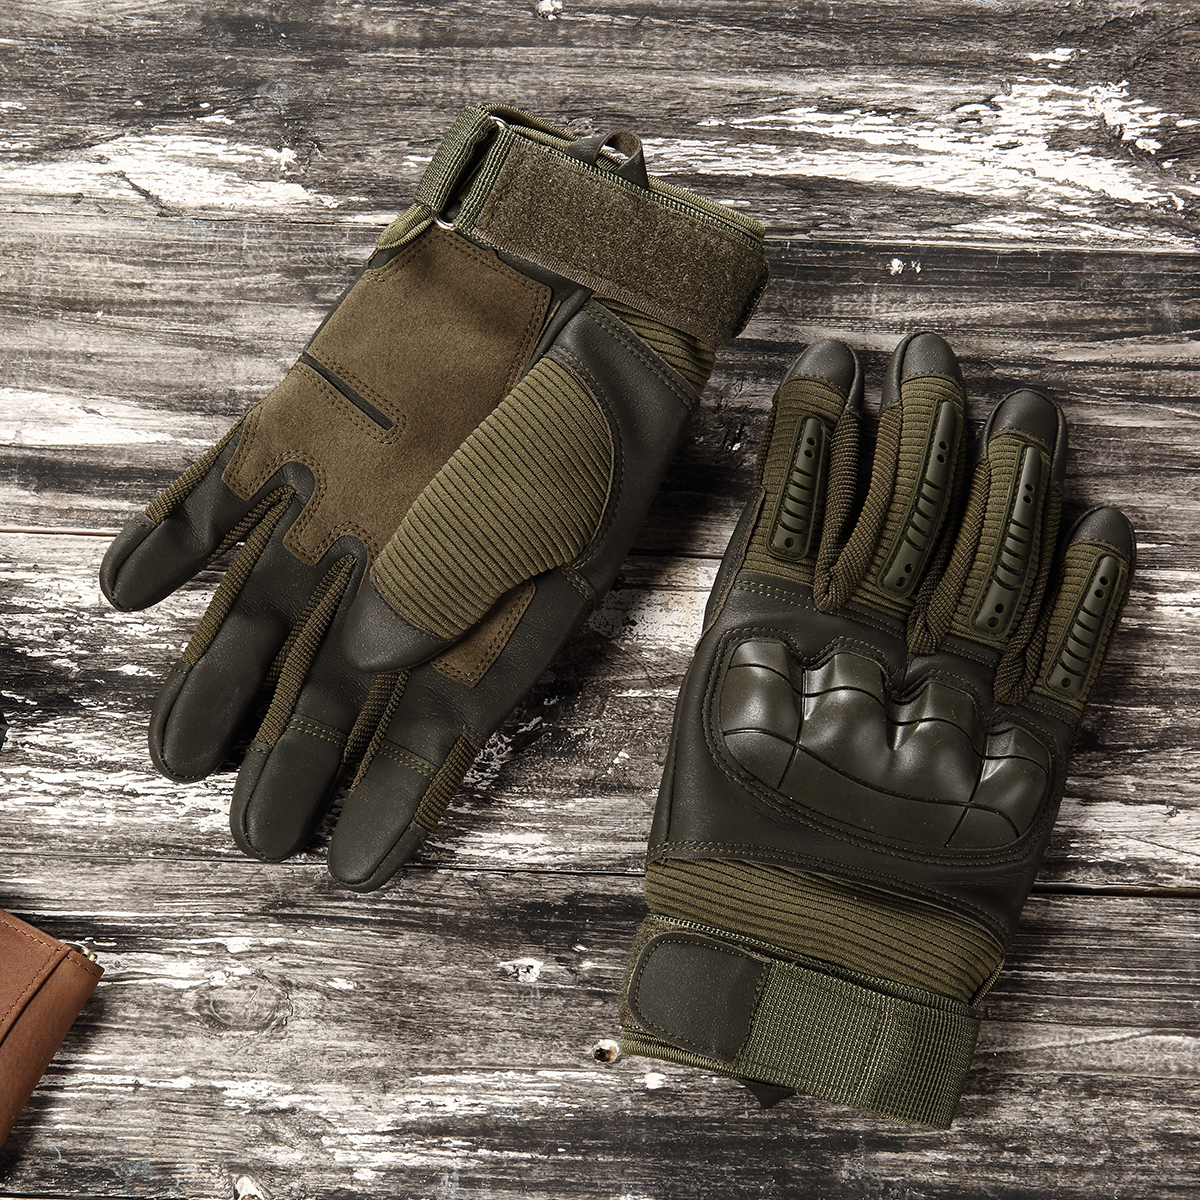 Army-Gloves Knuckle Bicycle-Combat Touch-Screen Rubber Paintball-Shooting Airsoft Military